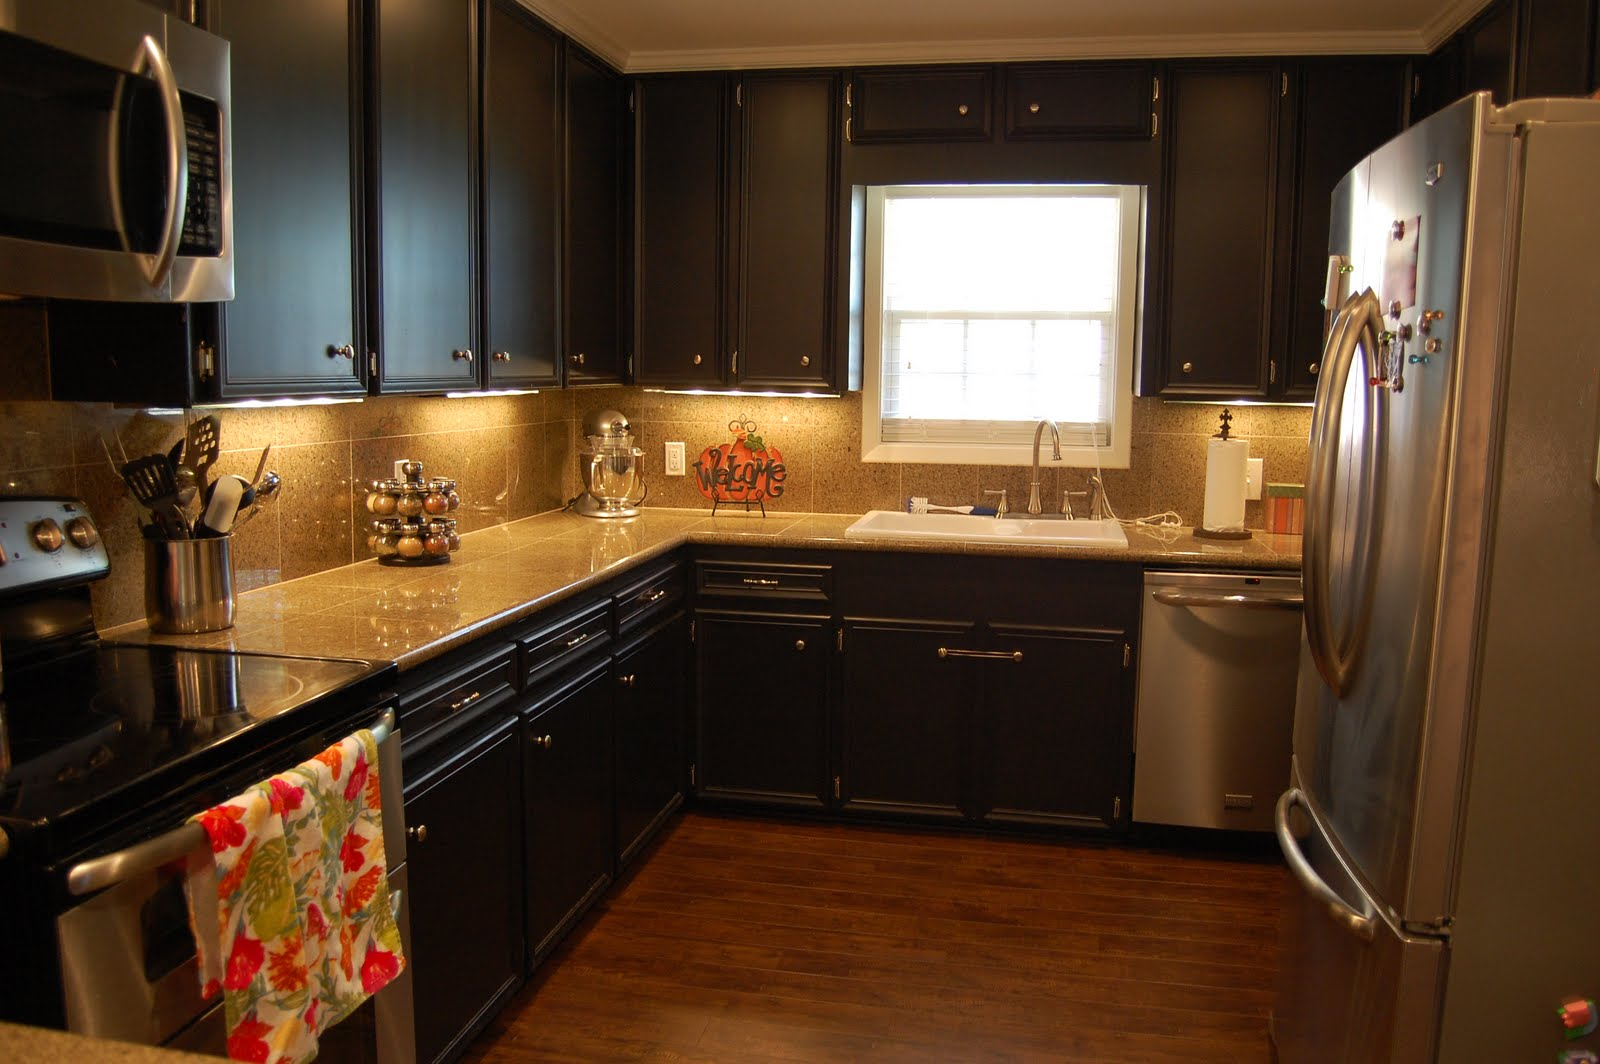 Musings of a farmer 39 s wife kitchen remodel pictures - Black kitchen cabinets small kitchen ...